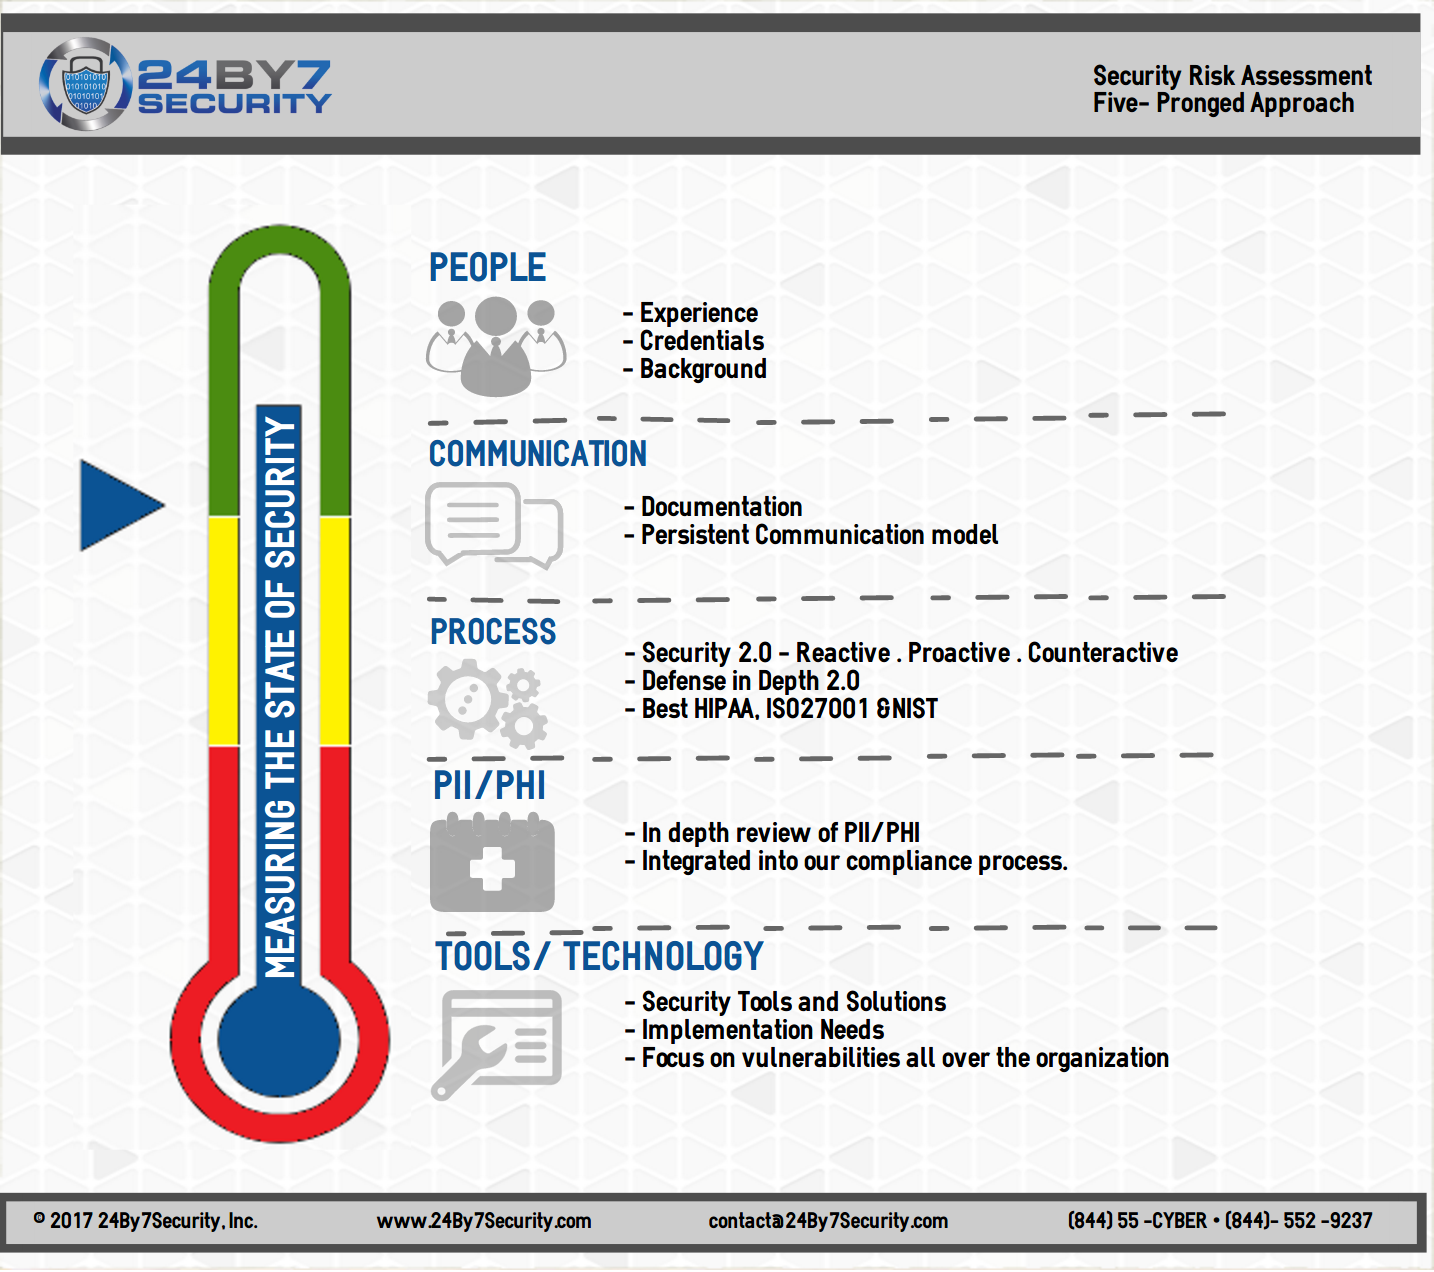 24By7Security SRA Approach Infographic